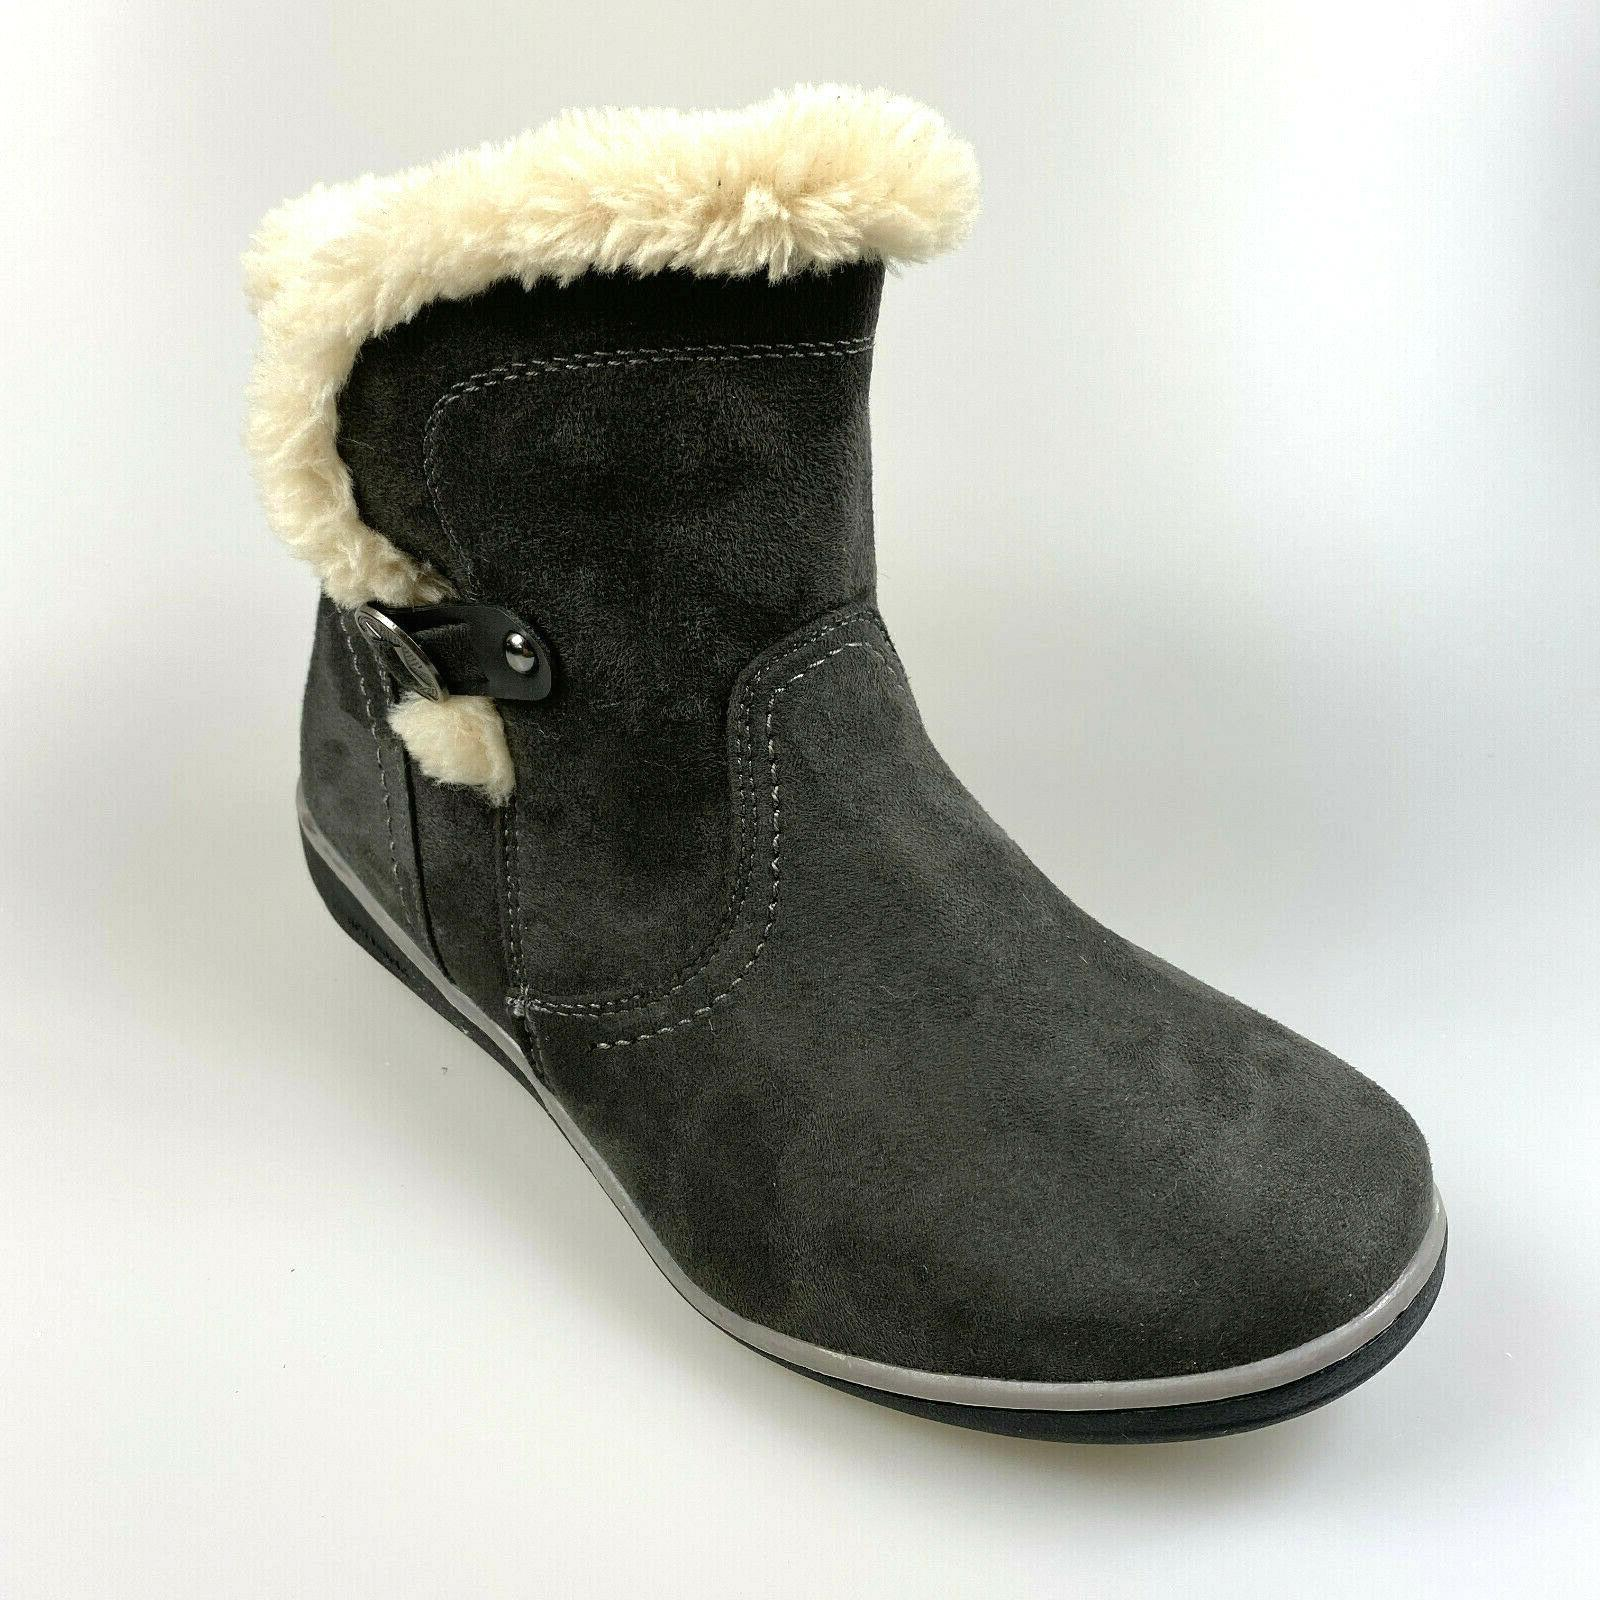 69 new women s size 8 charcoal